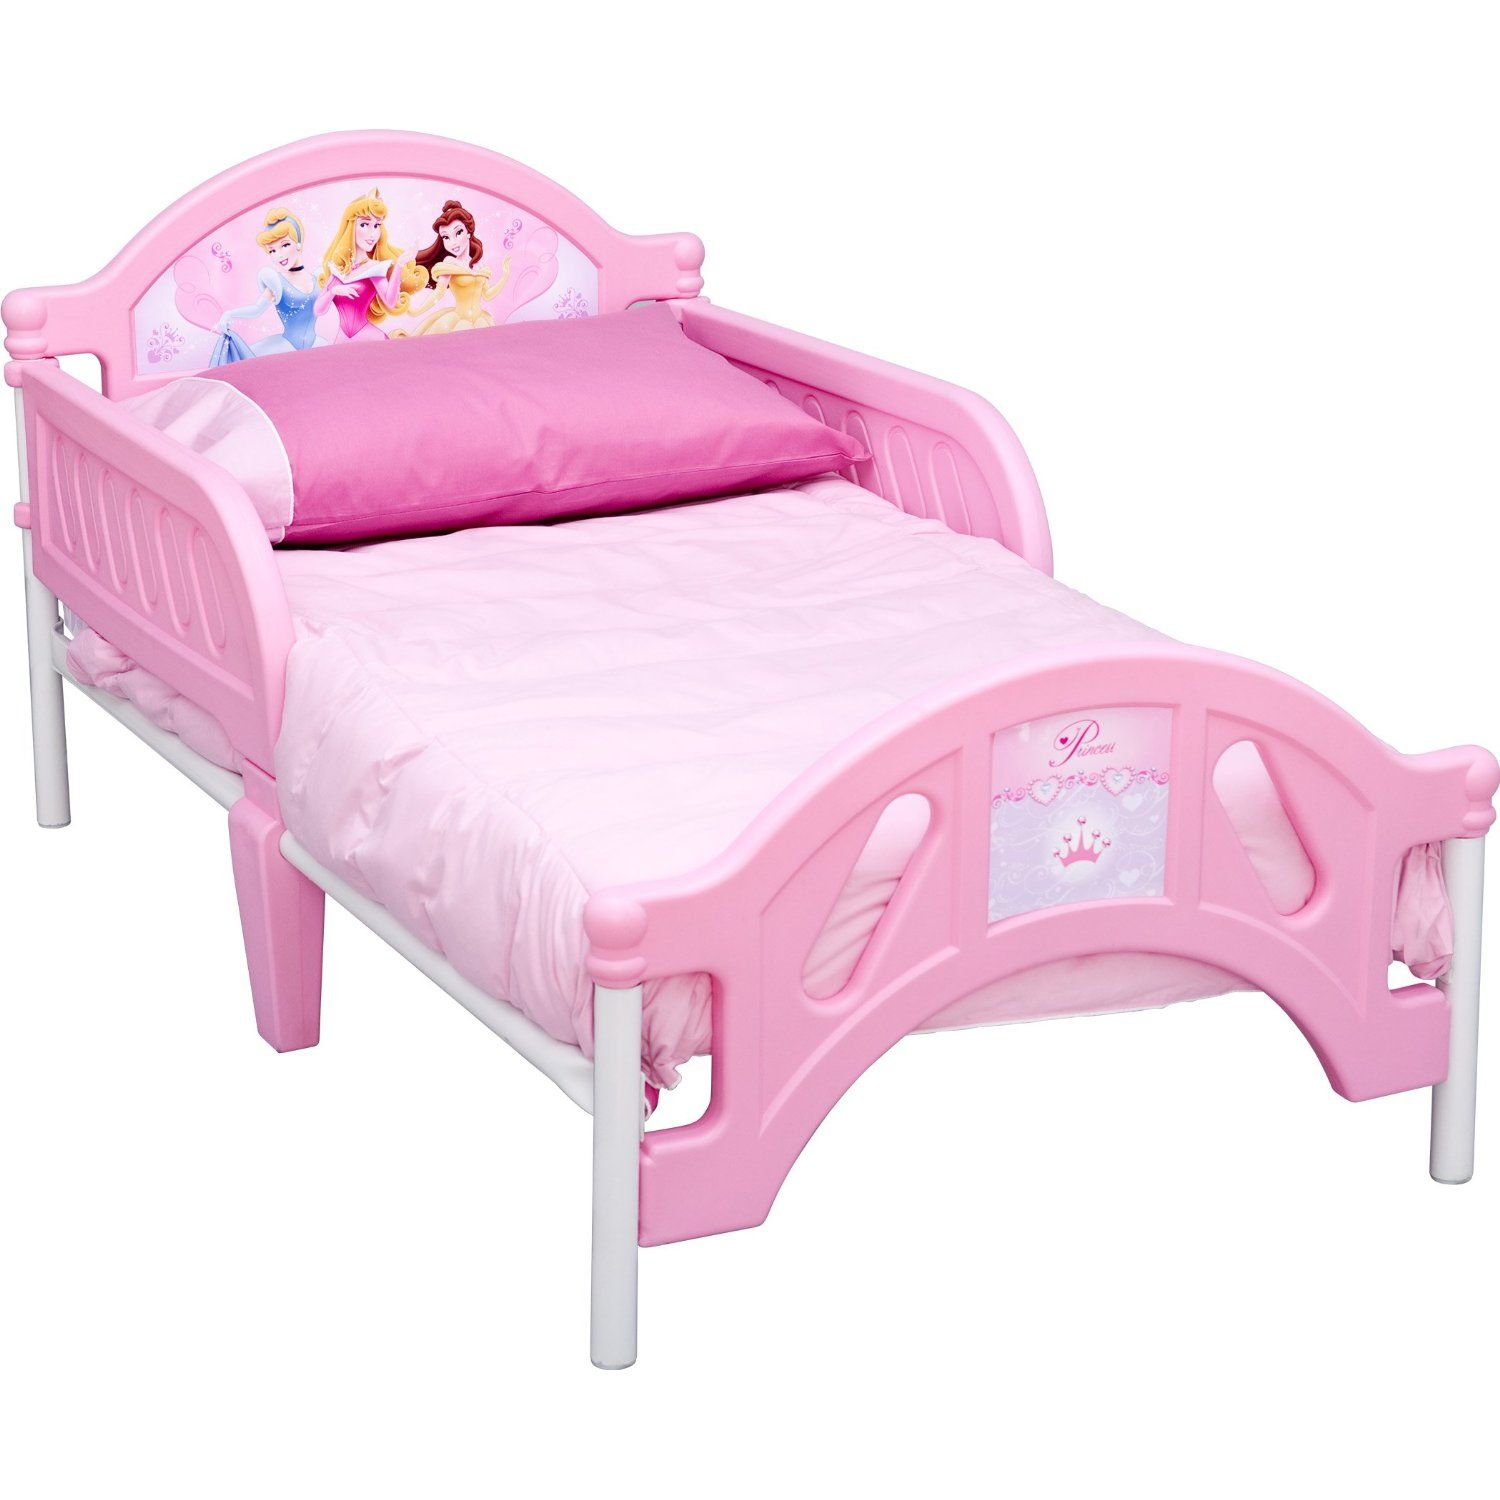 Mirab's Home Store Toddler bed girl